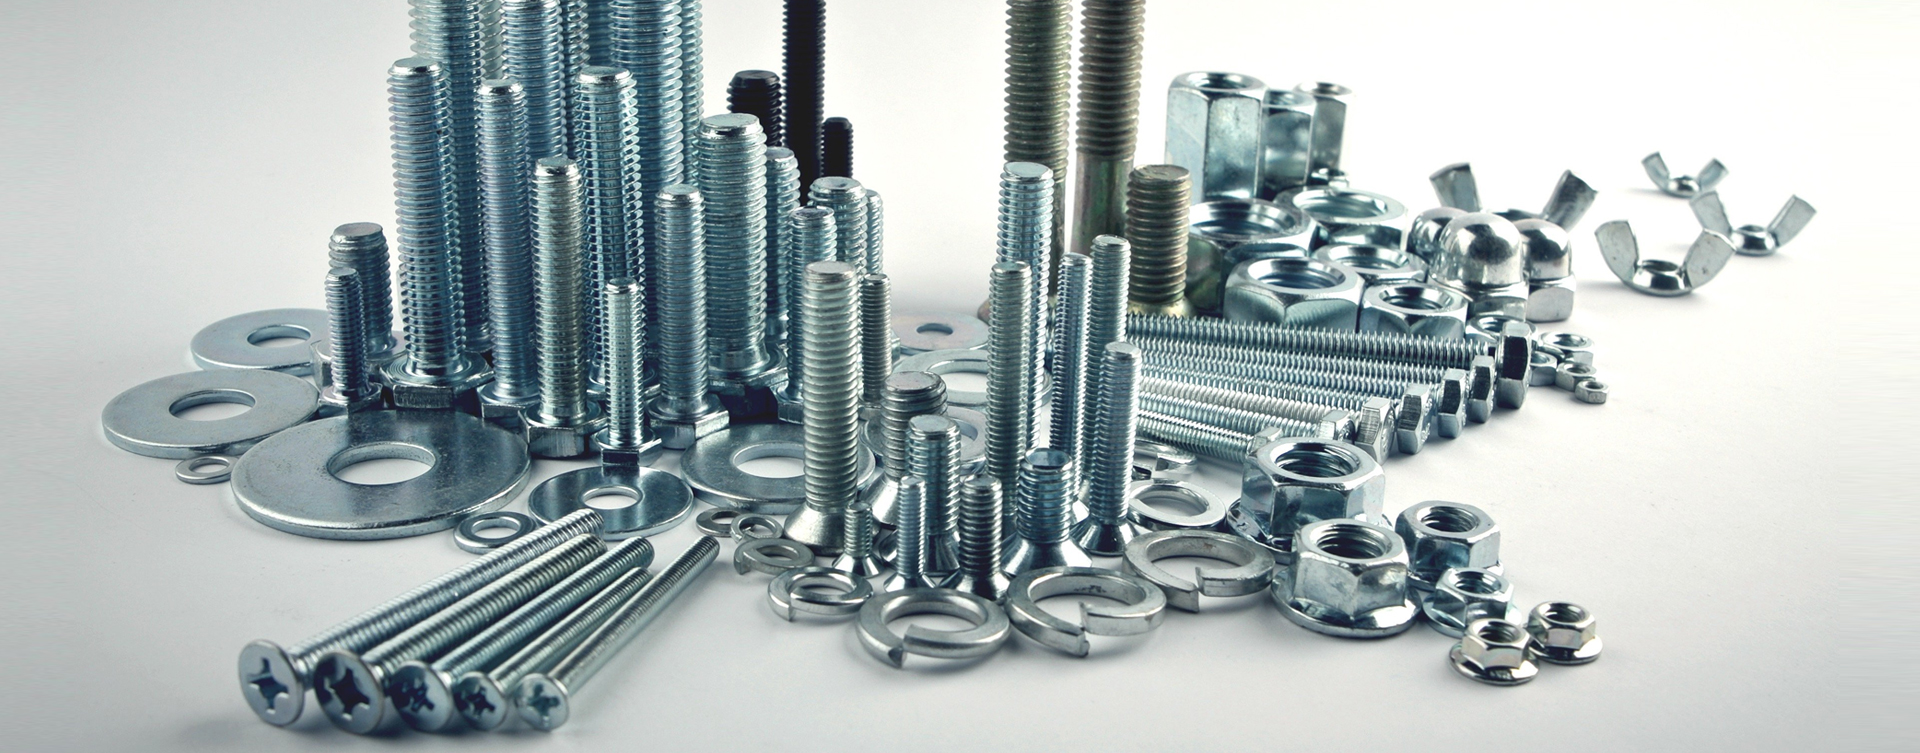 fasteners-manufacturers-suppliers-exporters-stockist